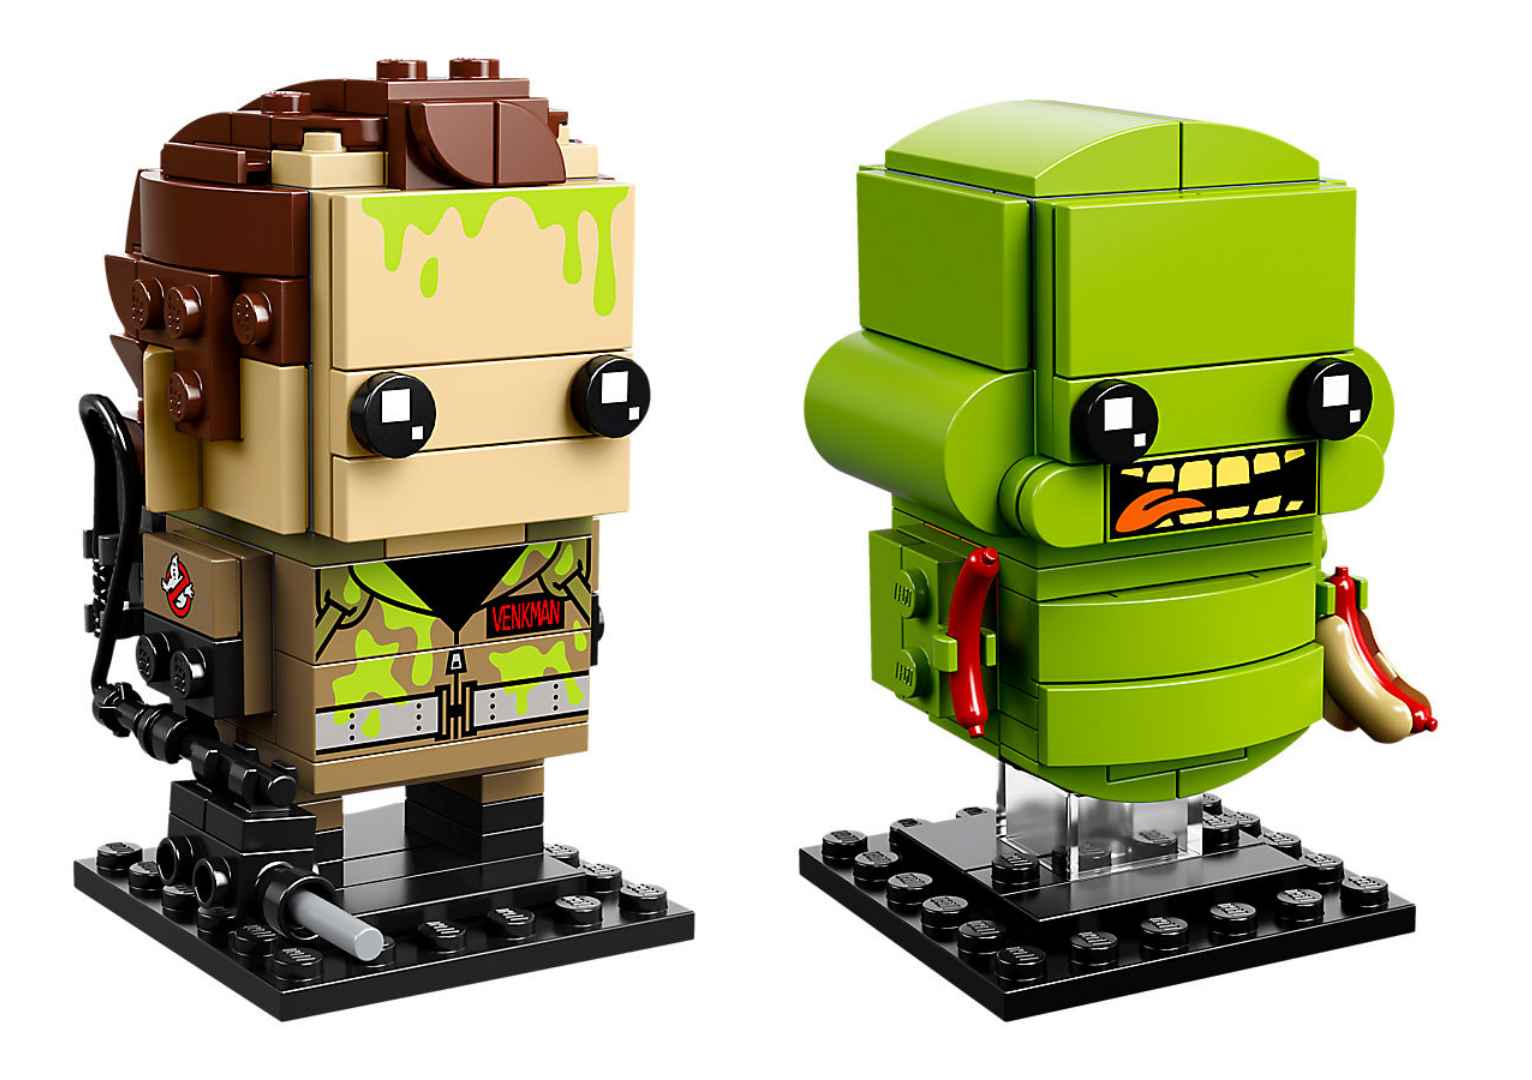 Lego Ghostbusters Brickheadz: Peter and Slimer 2 Pack